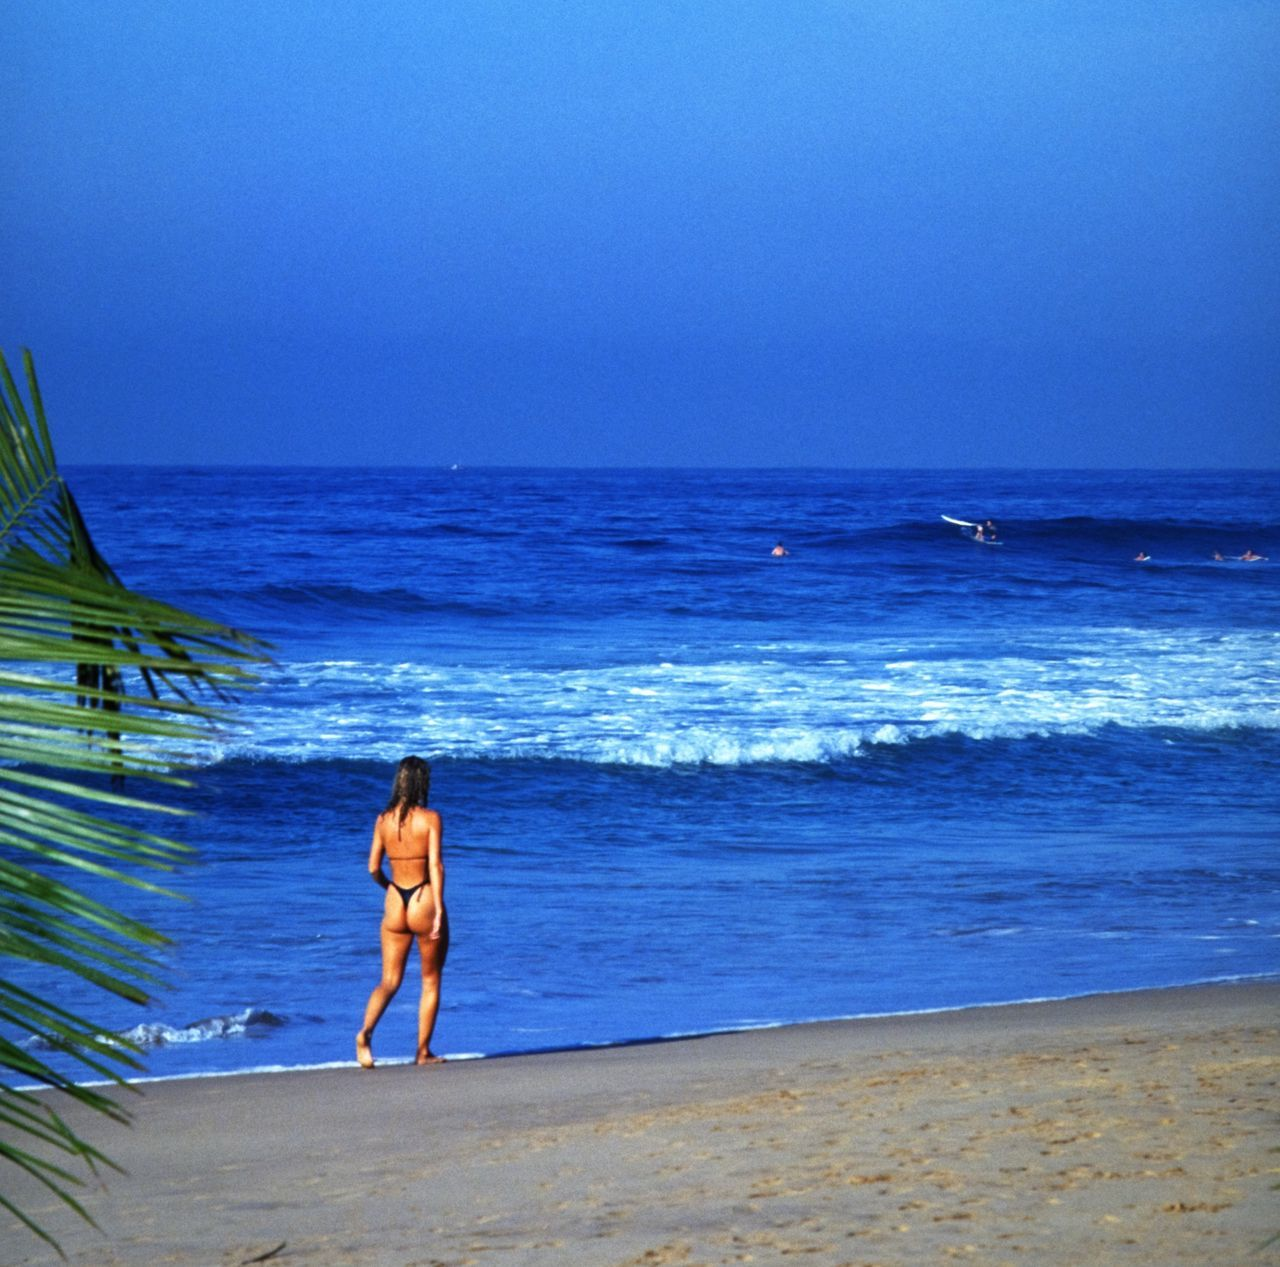 sea, horizon over water, water, beach, real people, nature, scenics, beauty in nature, full length, shirtless, sky, one person, lifestyles, walking, leisure activity, standing, outdoors, blue, sand, men, vacations, wave, clear sky, day, young adult, people